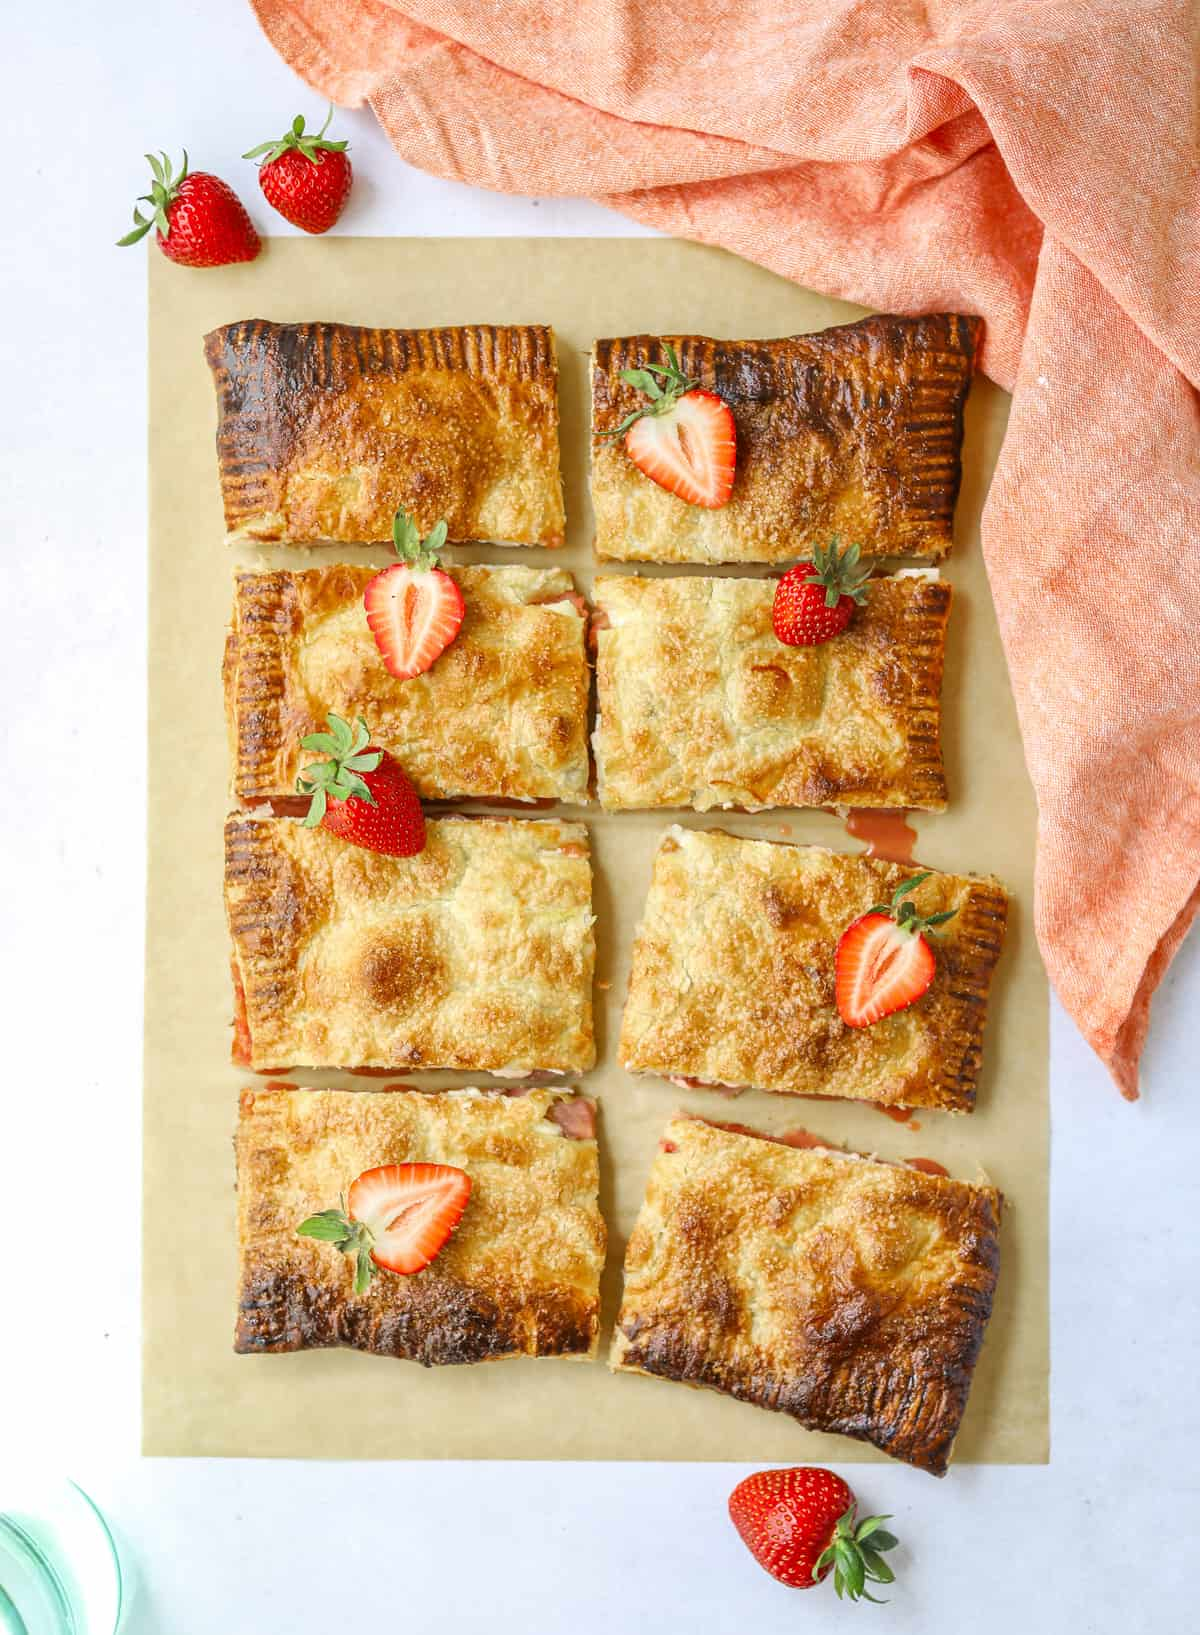 a strawberry rhubarb puff pastry tart cut into 8 rectangles on a blue background with fresh strawberries on top and a pink cloth napkin